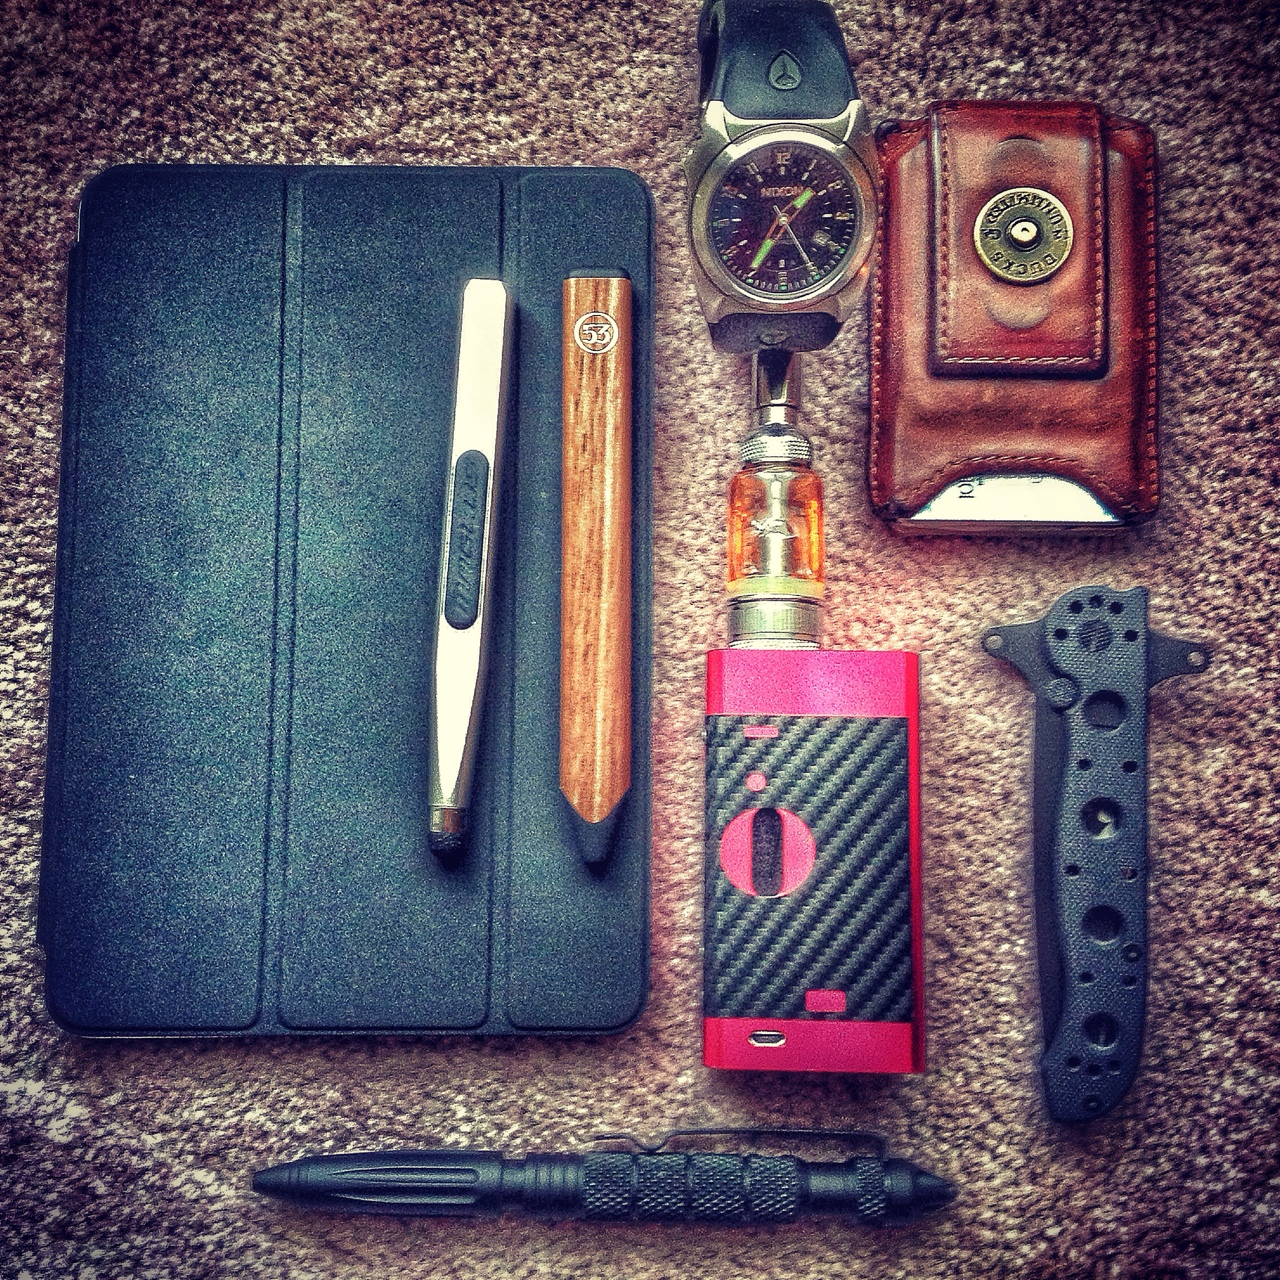 "pixeledthoughts: A pic of the stuff I carry with me everyday. iPad mini with Smart Cover , Pencil by 53 and Maglus,CRKT m16 knife, Uzi tactical pen, Cana mod with aspire nautilus , Nixon ""The Key"" watch, and Wallet. http://www.dailycarry.co"